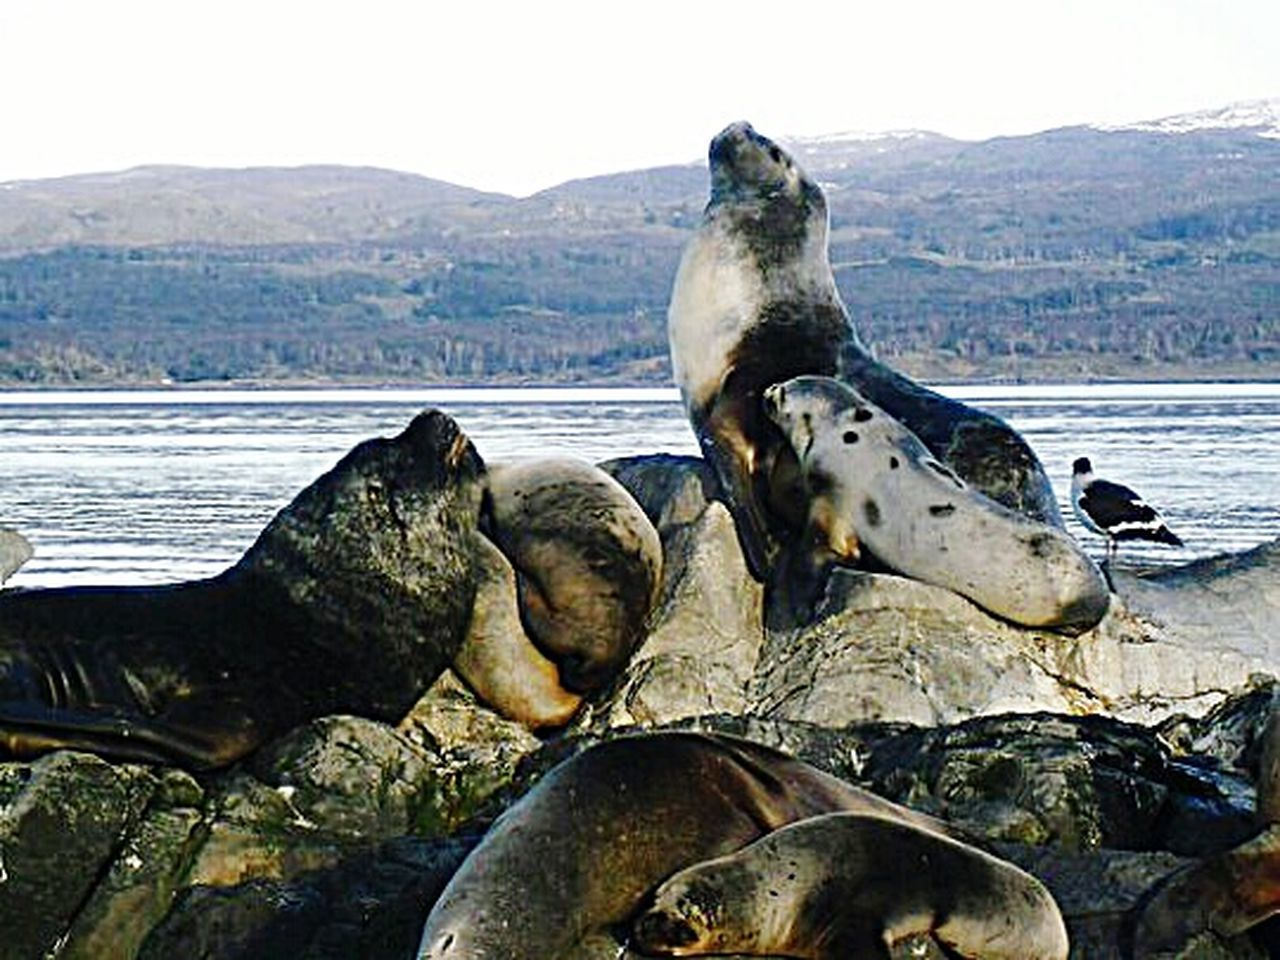 Water Sea Outdoors Animal Themes No People Nature Mammal Beauty In Nature Landscape Ushuaïa Fin Del Mundo Argentina Travel Floating On Water Canal Beagle Seal